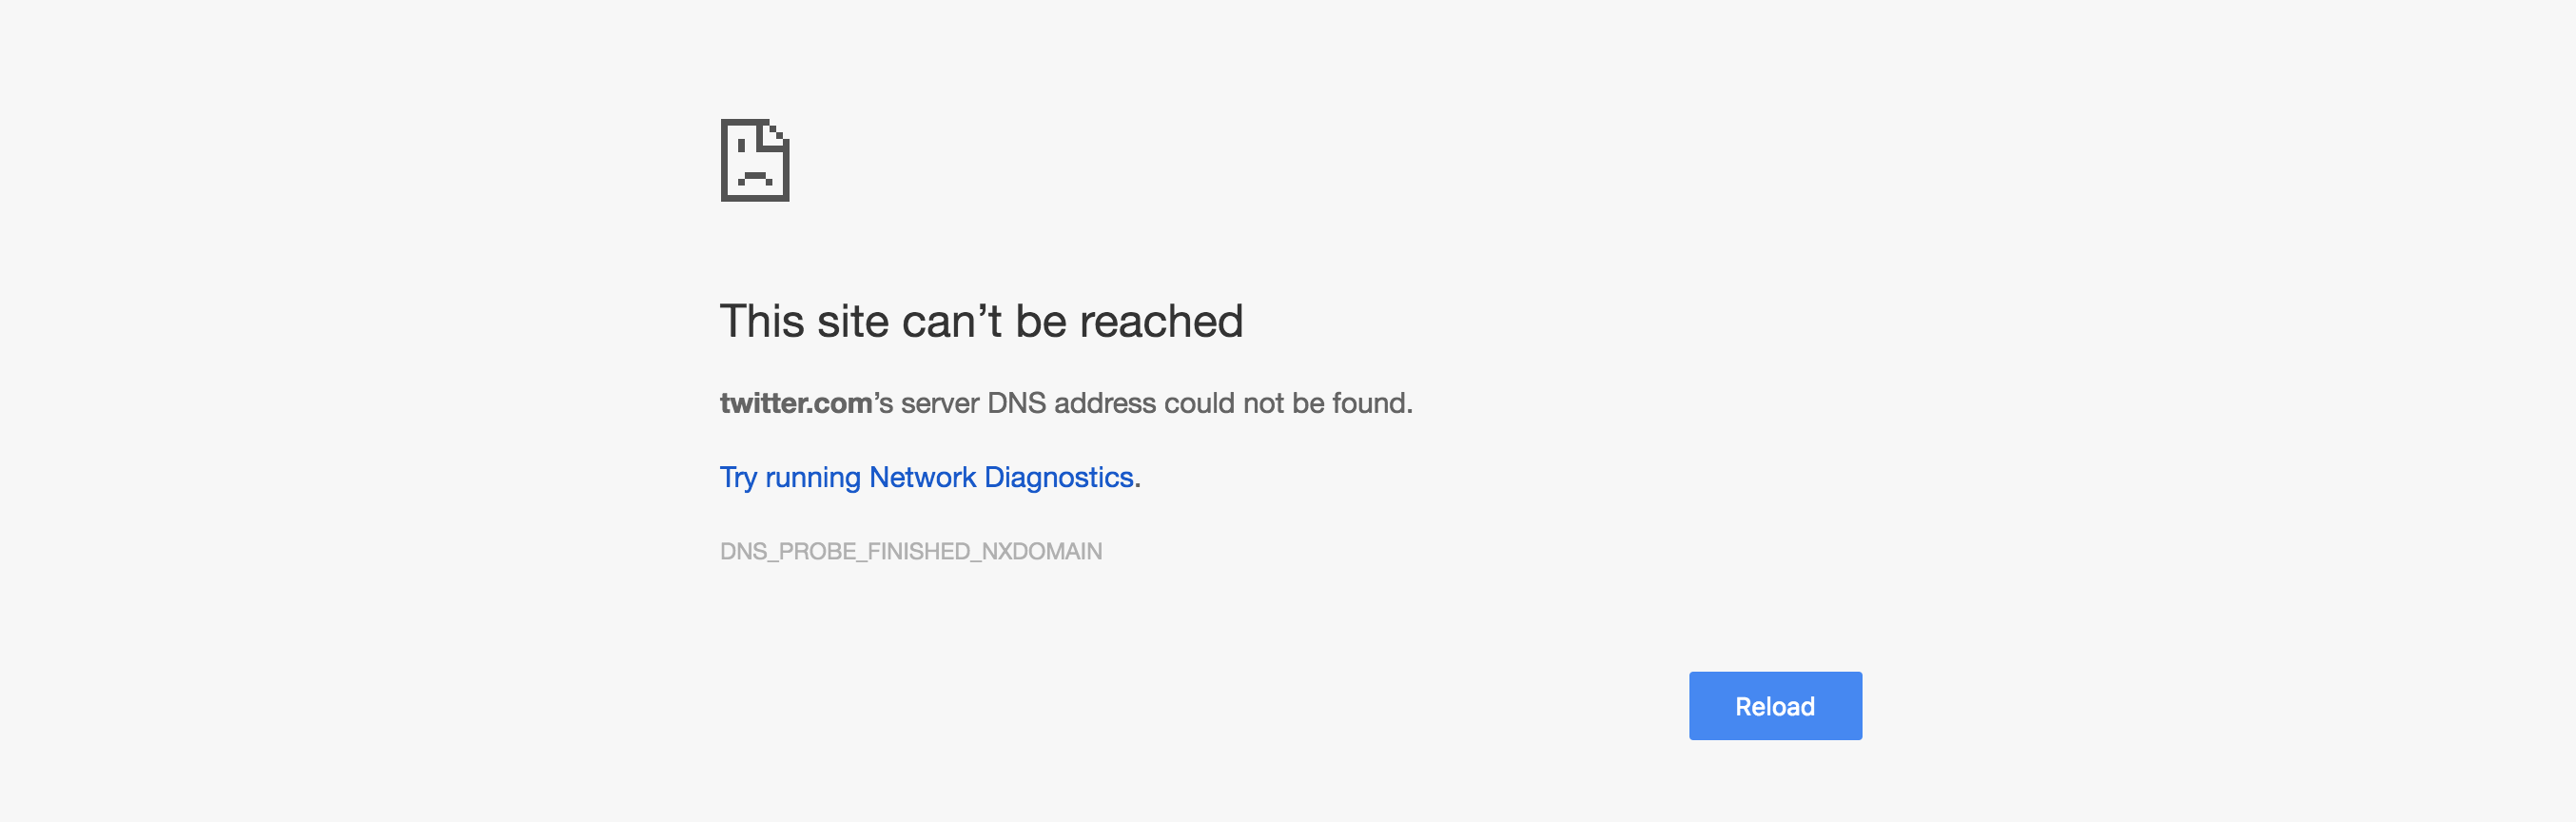 Today's Dyn DDoS attack: you wanted a world without Twitter